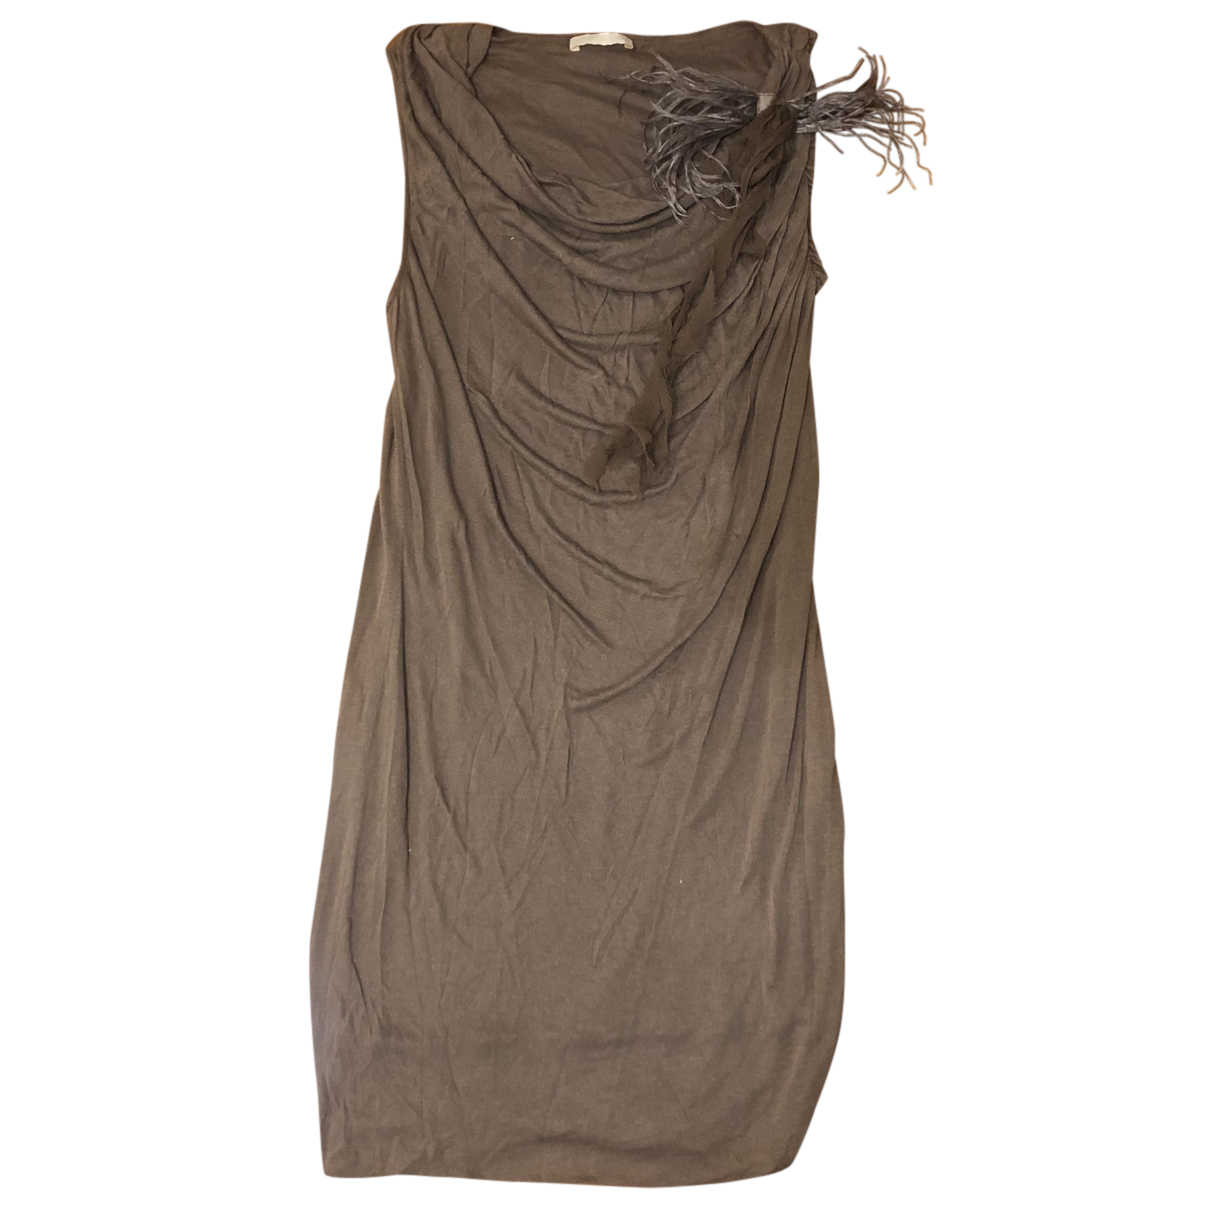 Ermanno Scervino N Brown Cashmere dress for Women 42 IT